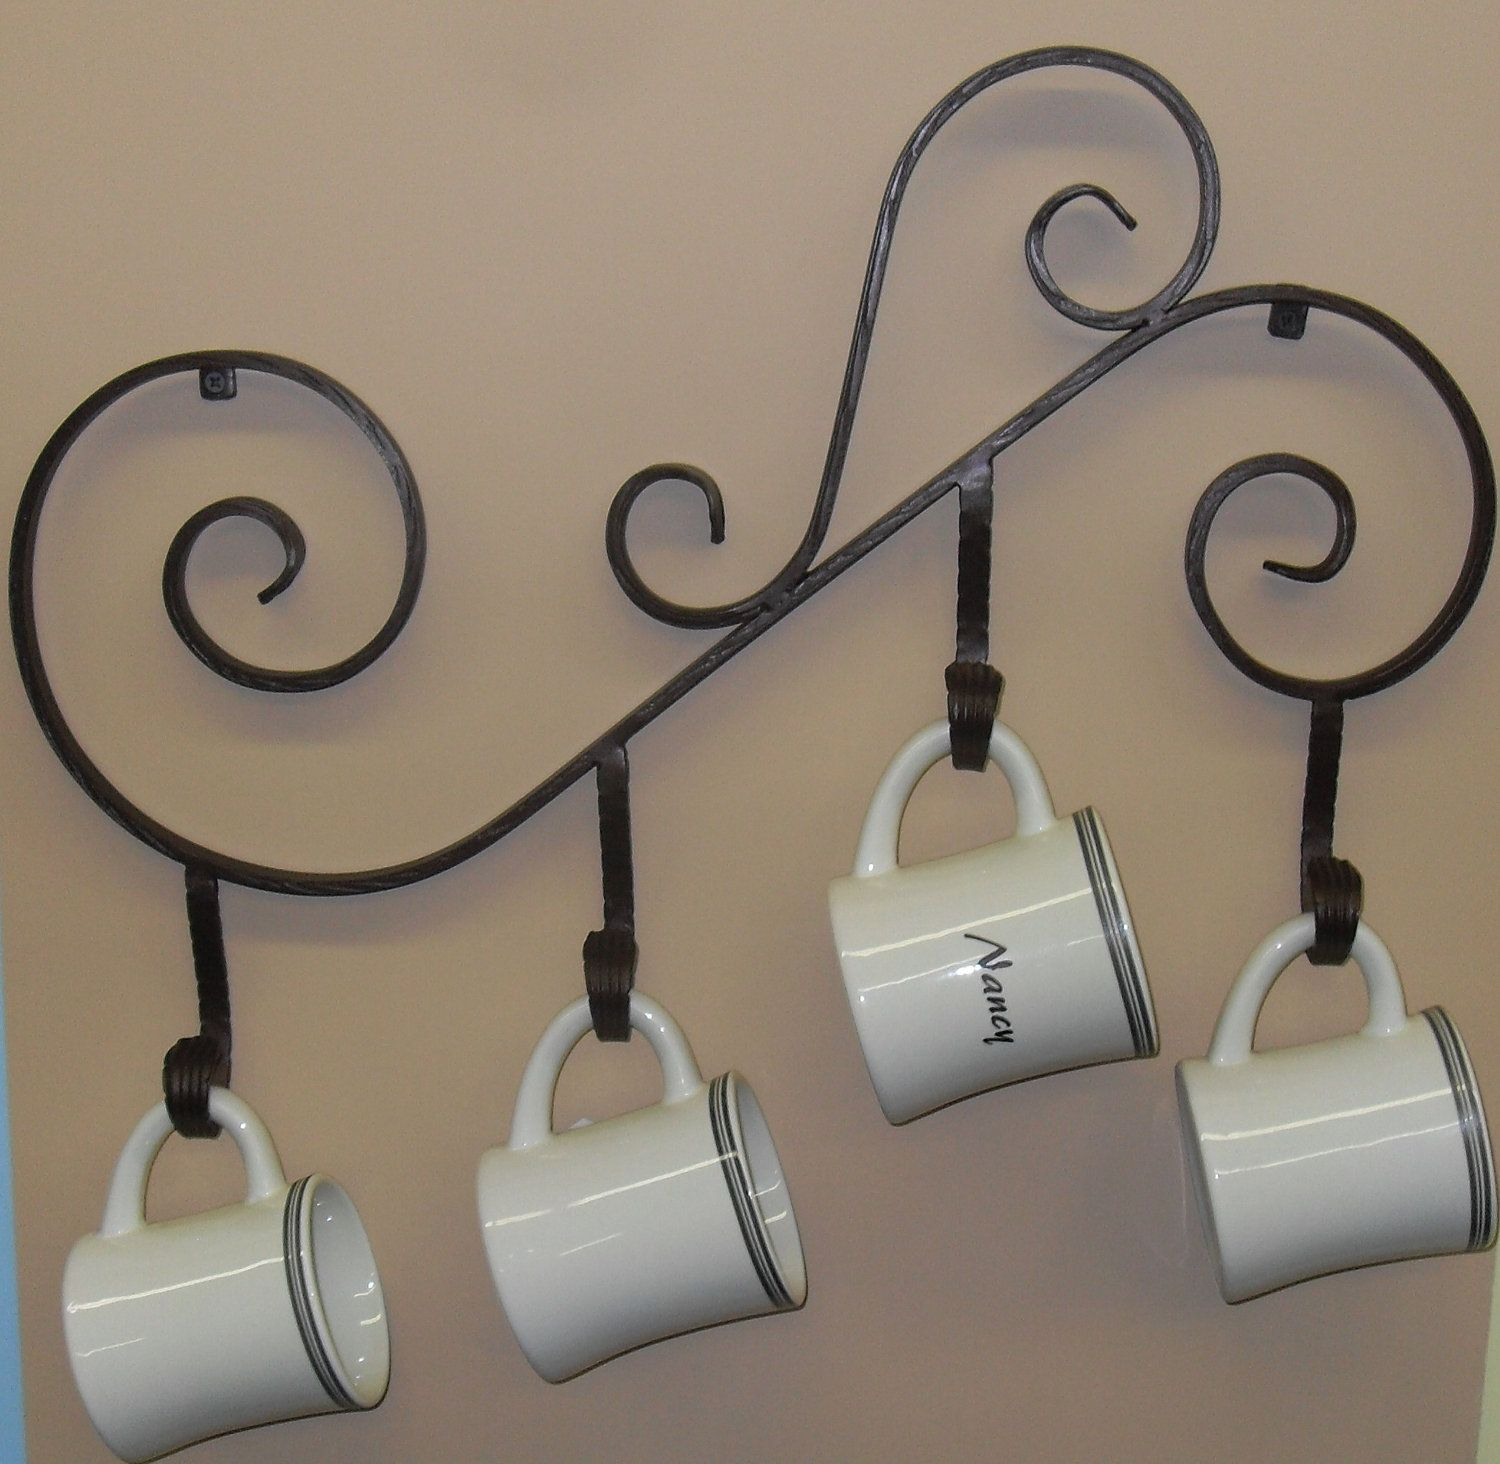 Coffee Mug Holder, Wall Mounted made out of Wrought Iron